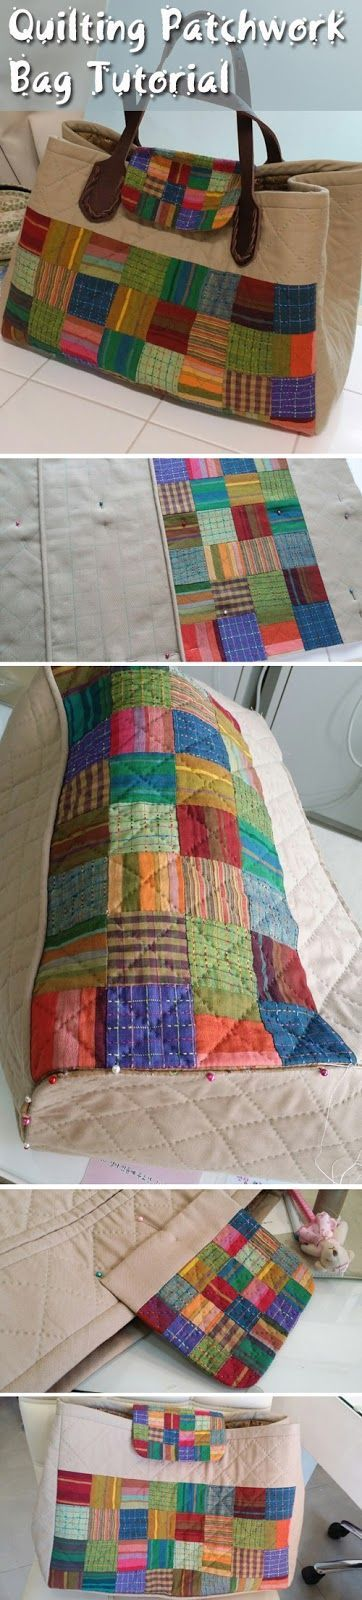 Quilting Patchwork Bag Tutorial DIY step-by-step. Сумка пэчворк, инструкция по шитью ~ http://www.handmadiya.com/2015/08/quilting-patchwork-bag-tutorial.html: